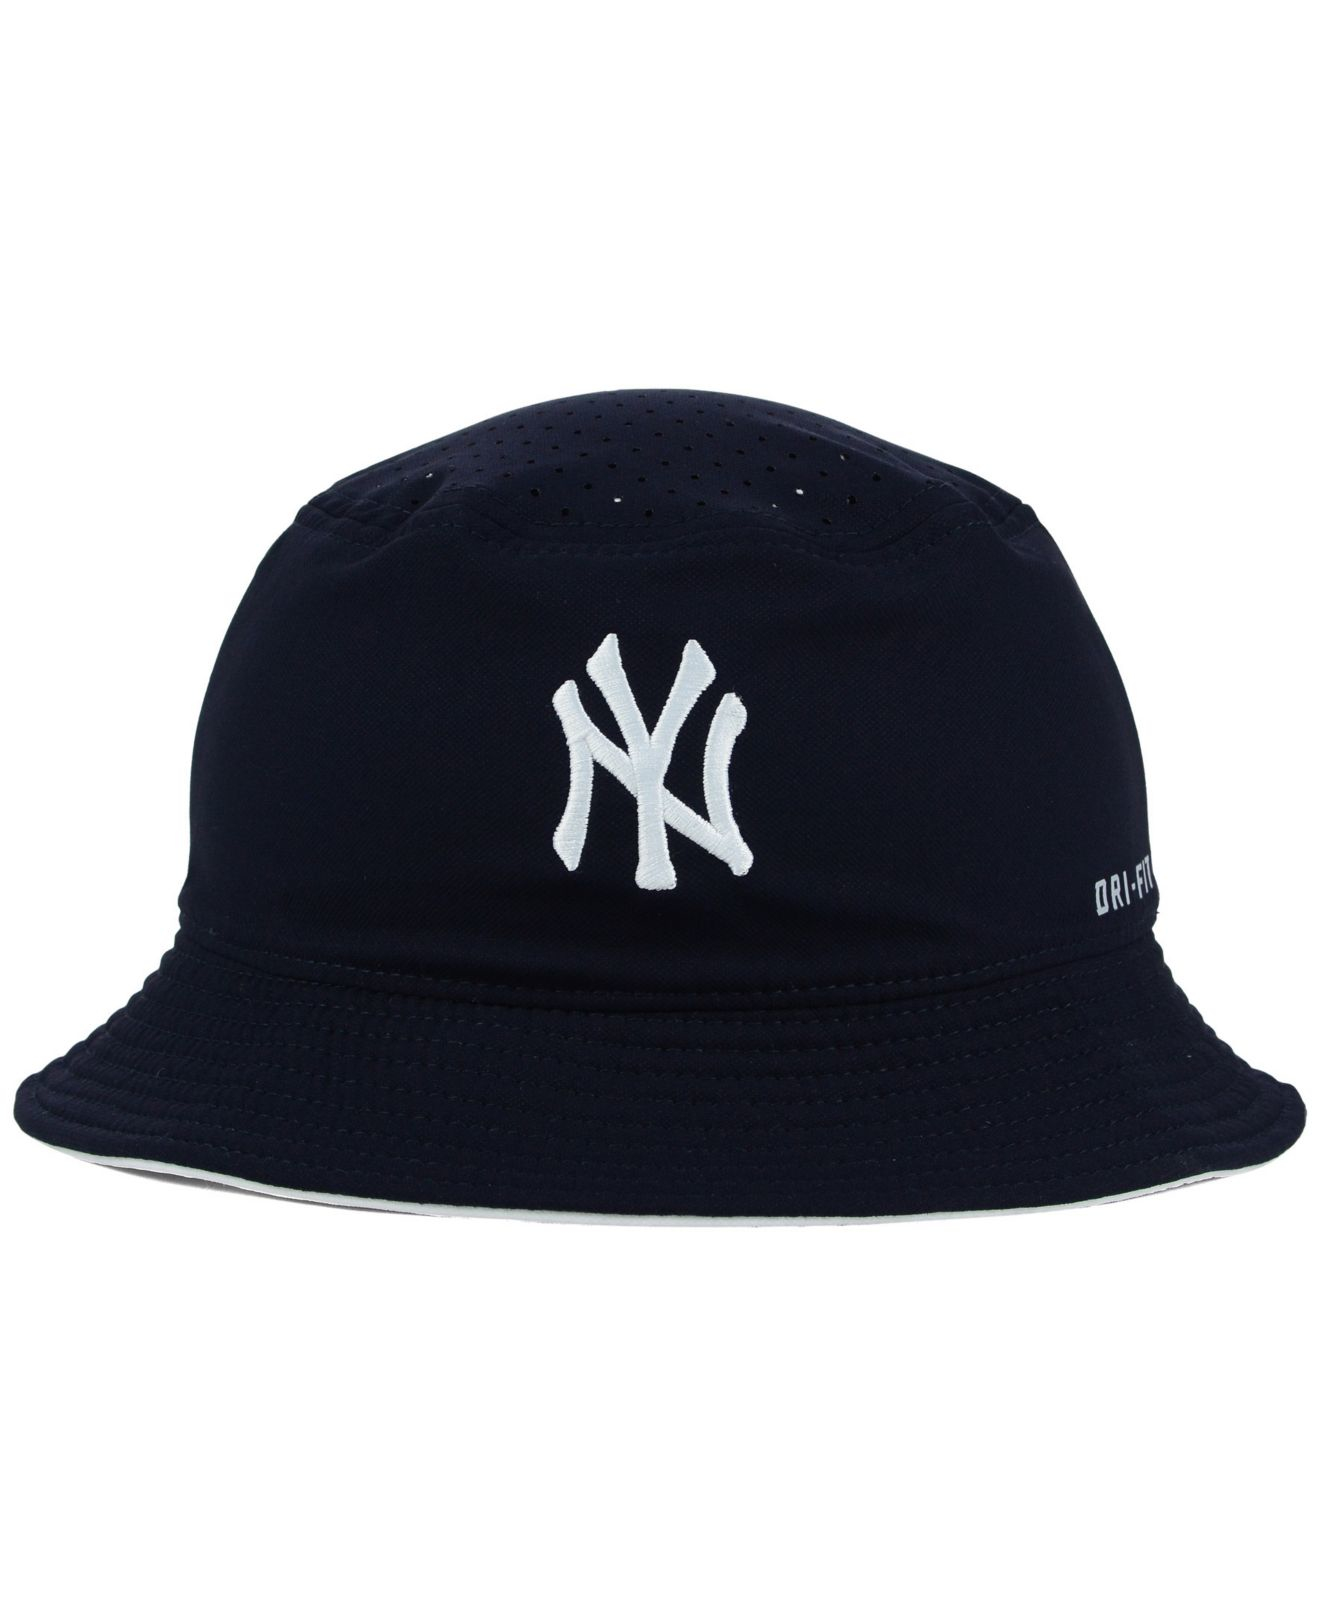 Lyst - Nike New York Yankees Vapor Dri-fit Bucket Hat in Blue for Men 132c47bf7a8